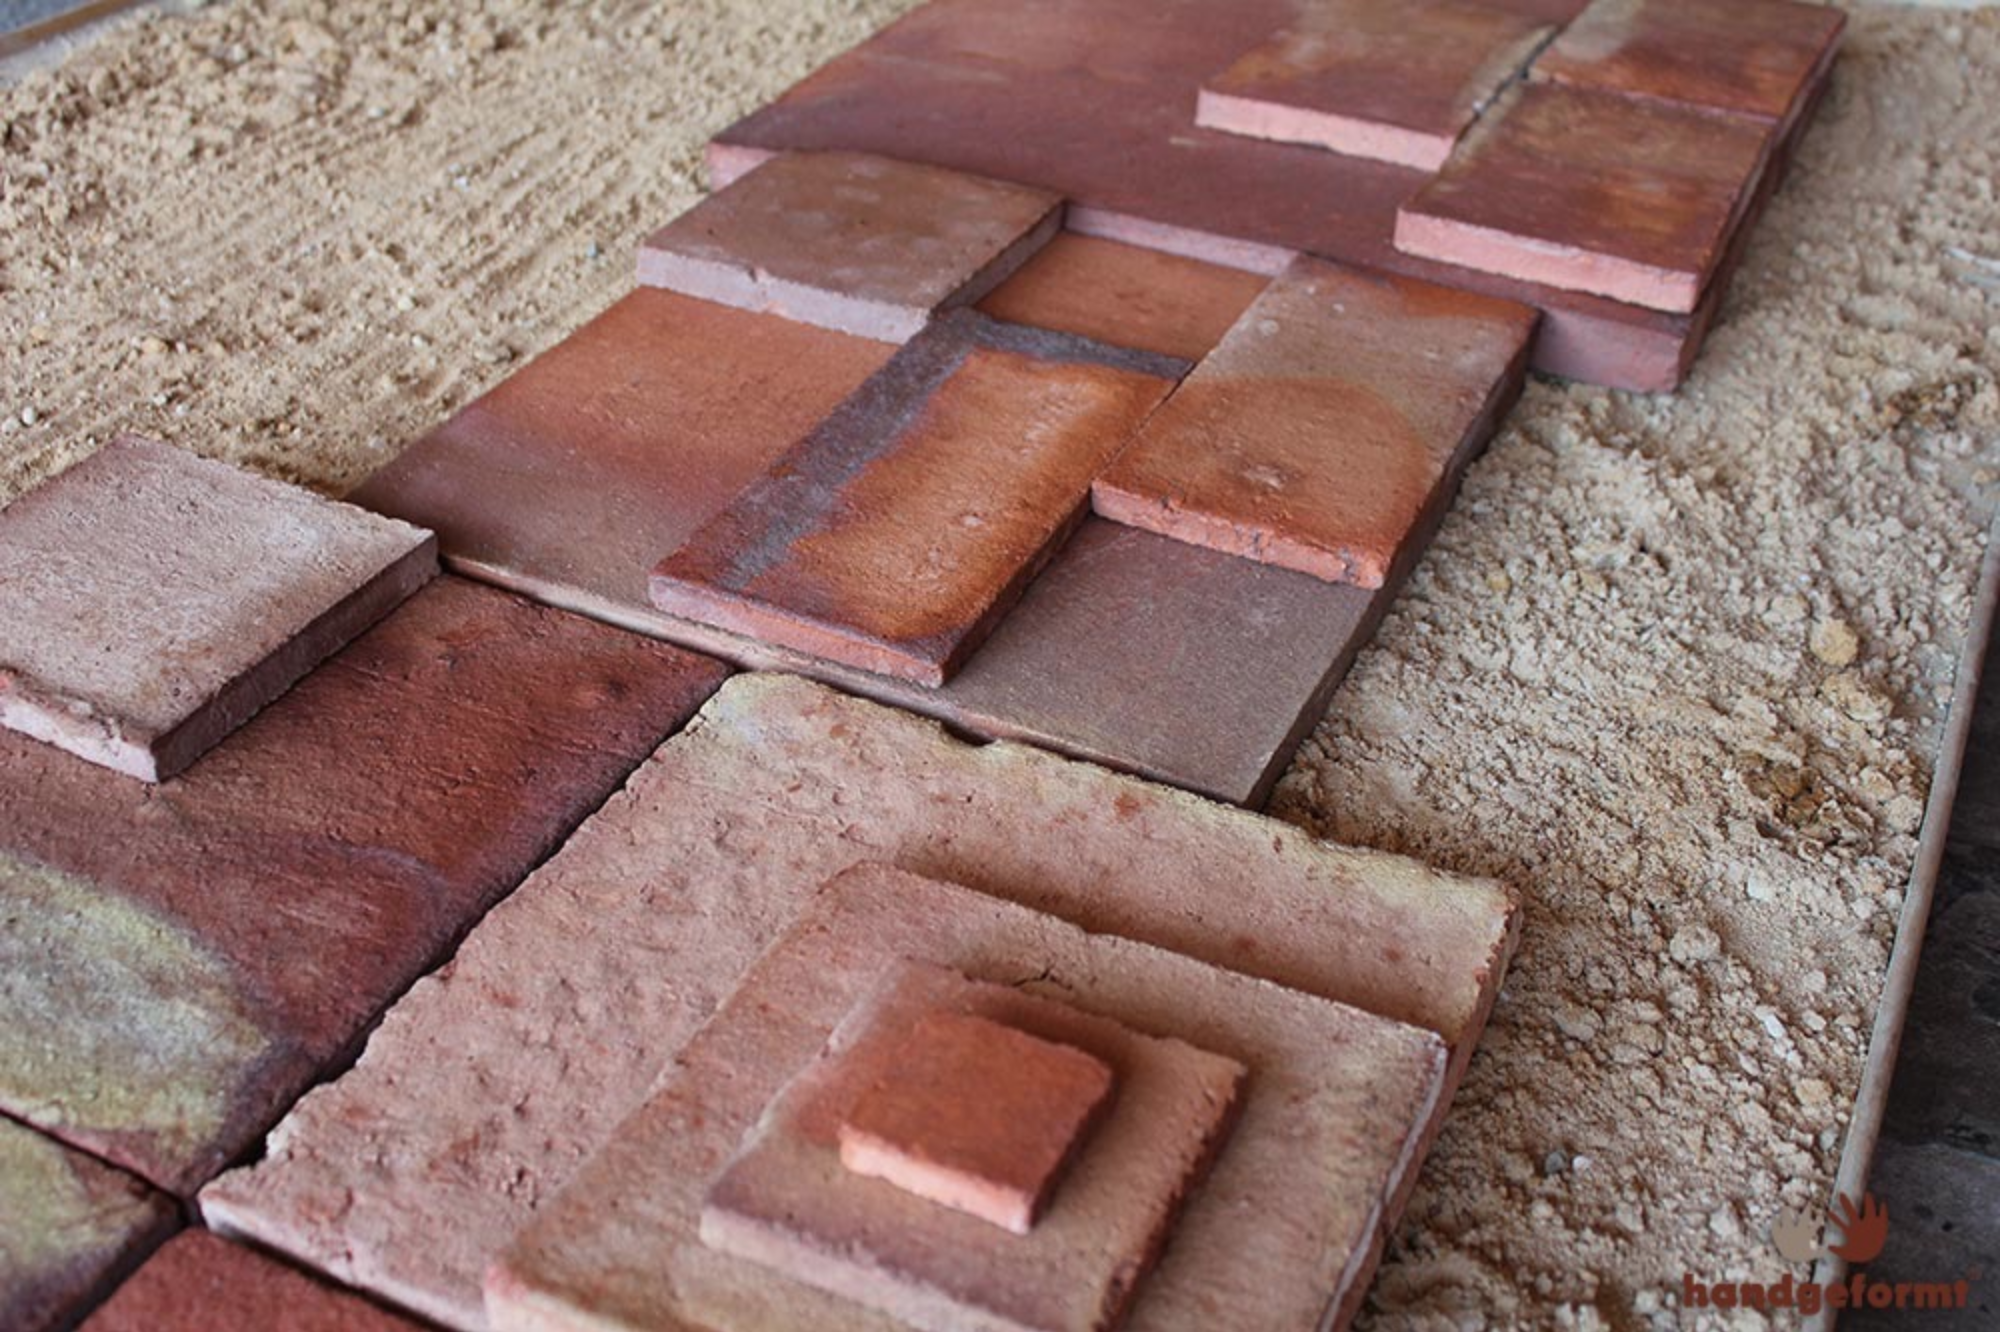 handmade ash look clay brick tiles from Lahore Pakistan